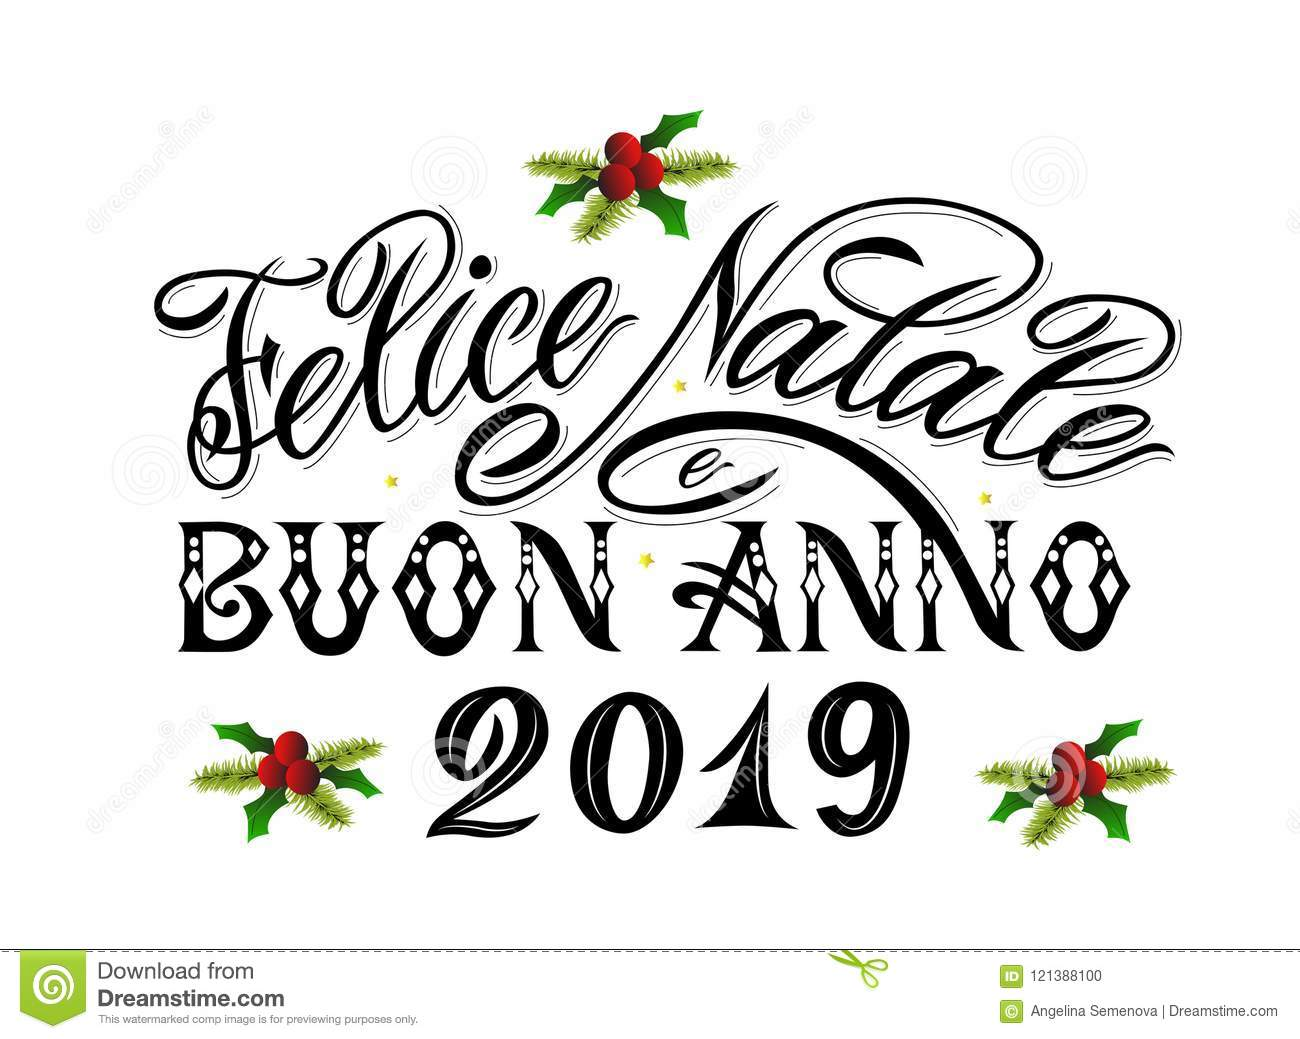 Merry christmas and happy new year 2019 greetings text in italian merry christmas and happy new year 2019 greetings text in italian language as postcard print banner poster modern calligraphy lettering m4hsunfo